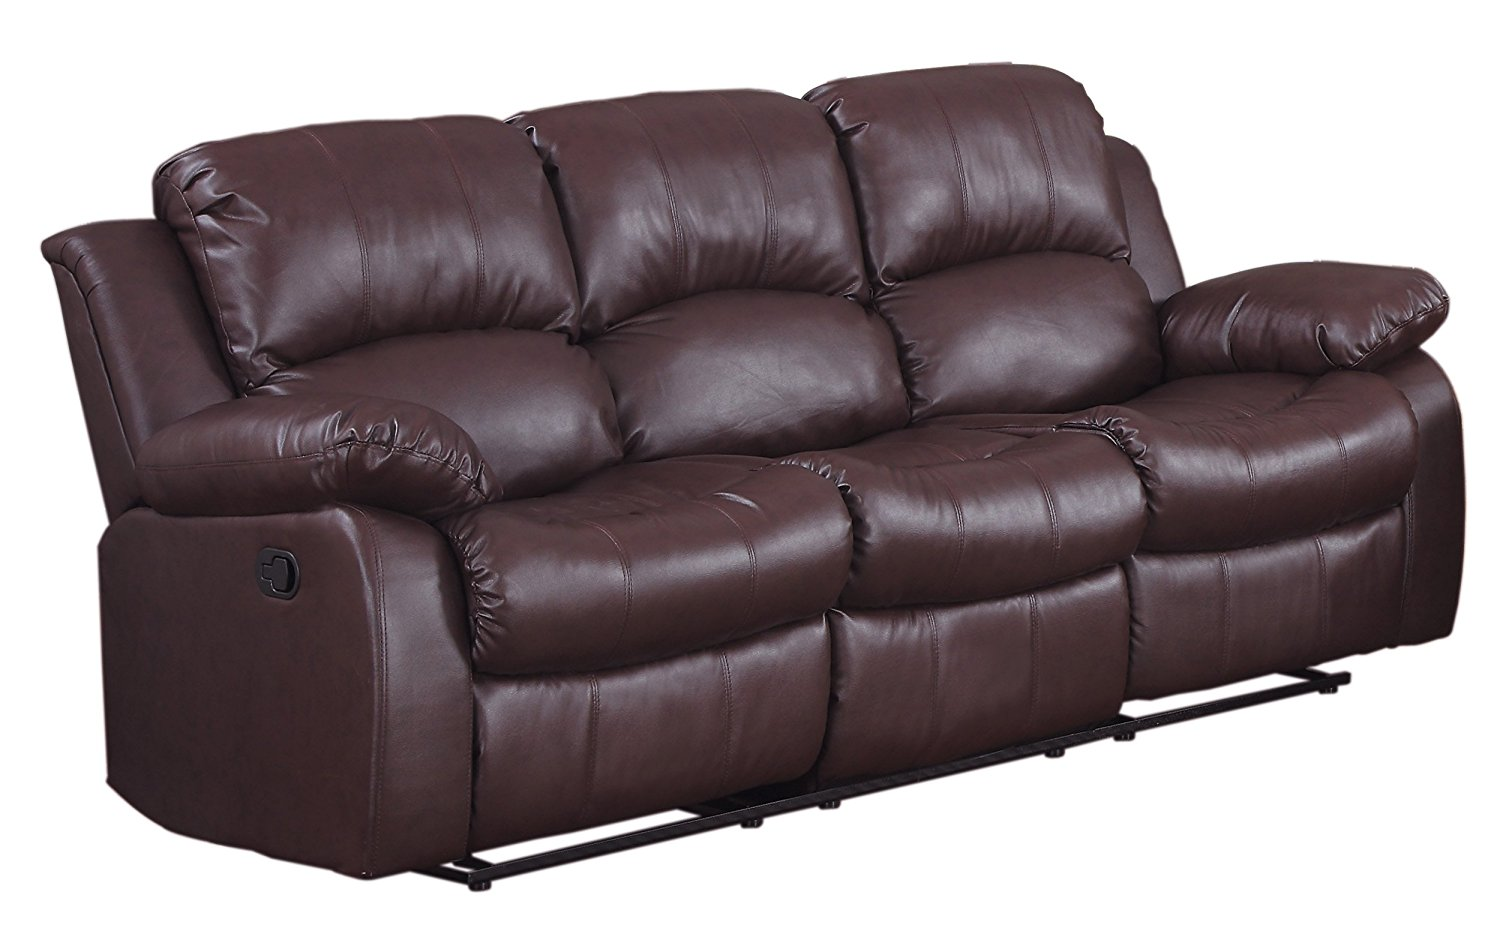 This double reclining from Homelegance is a stylish and nice leather recliner to have in your home